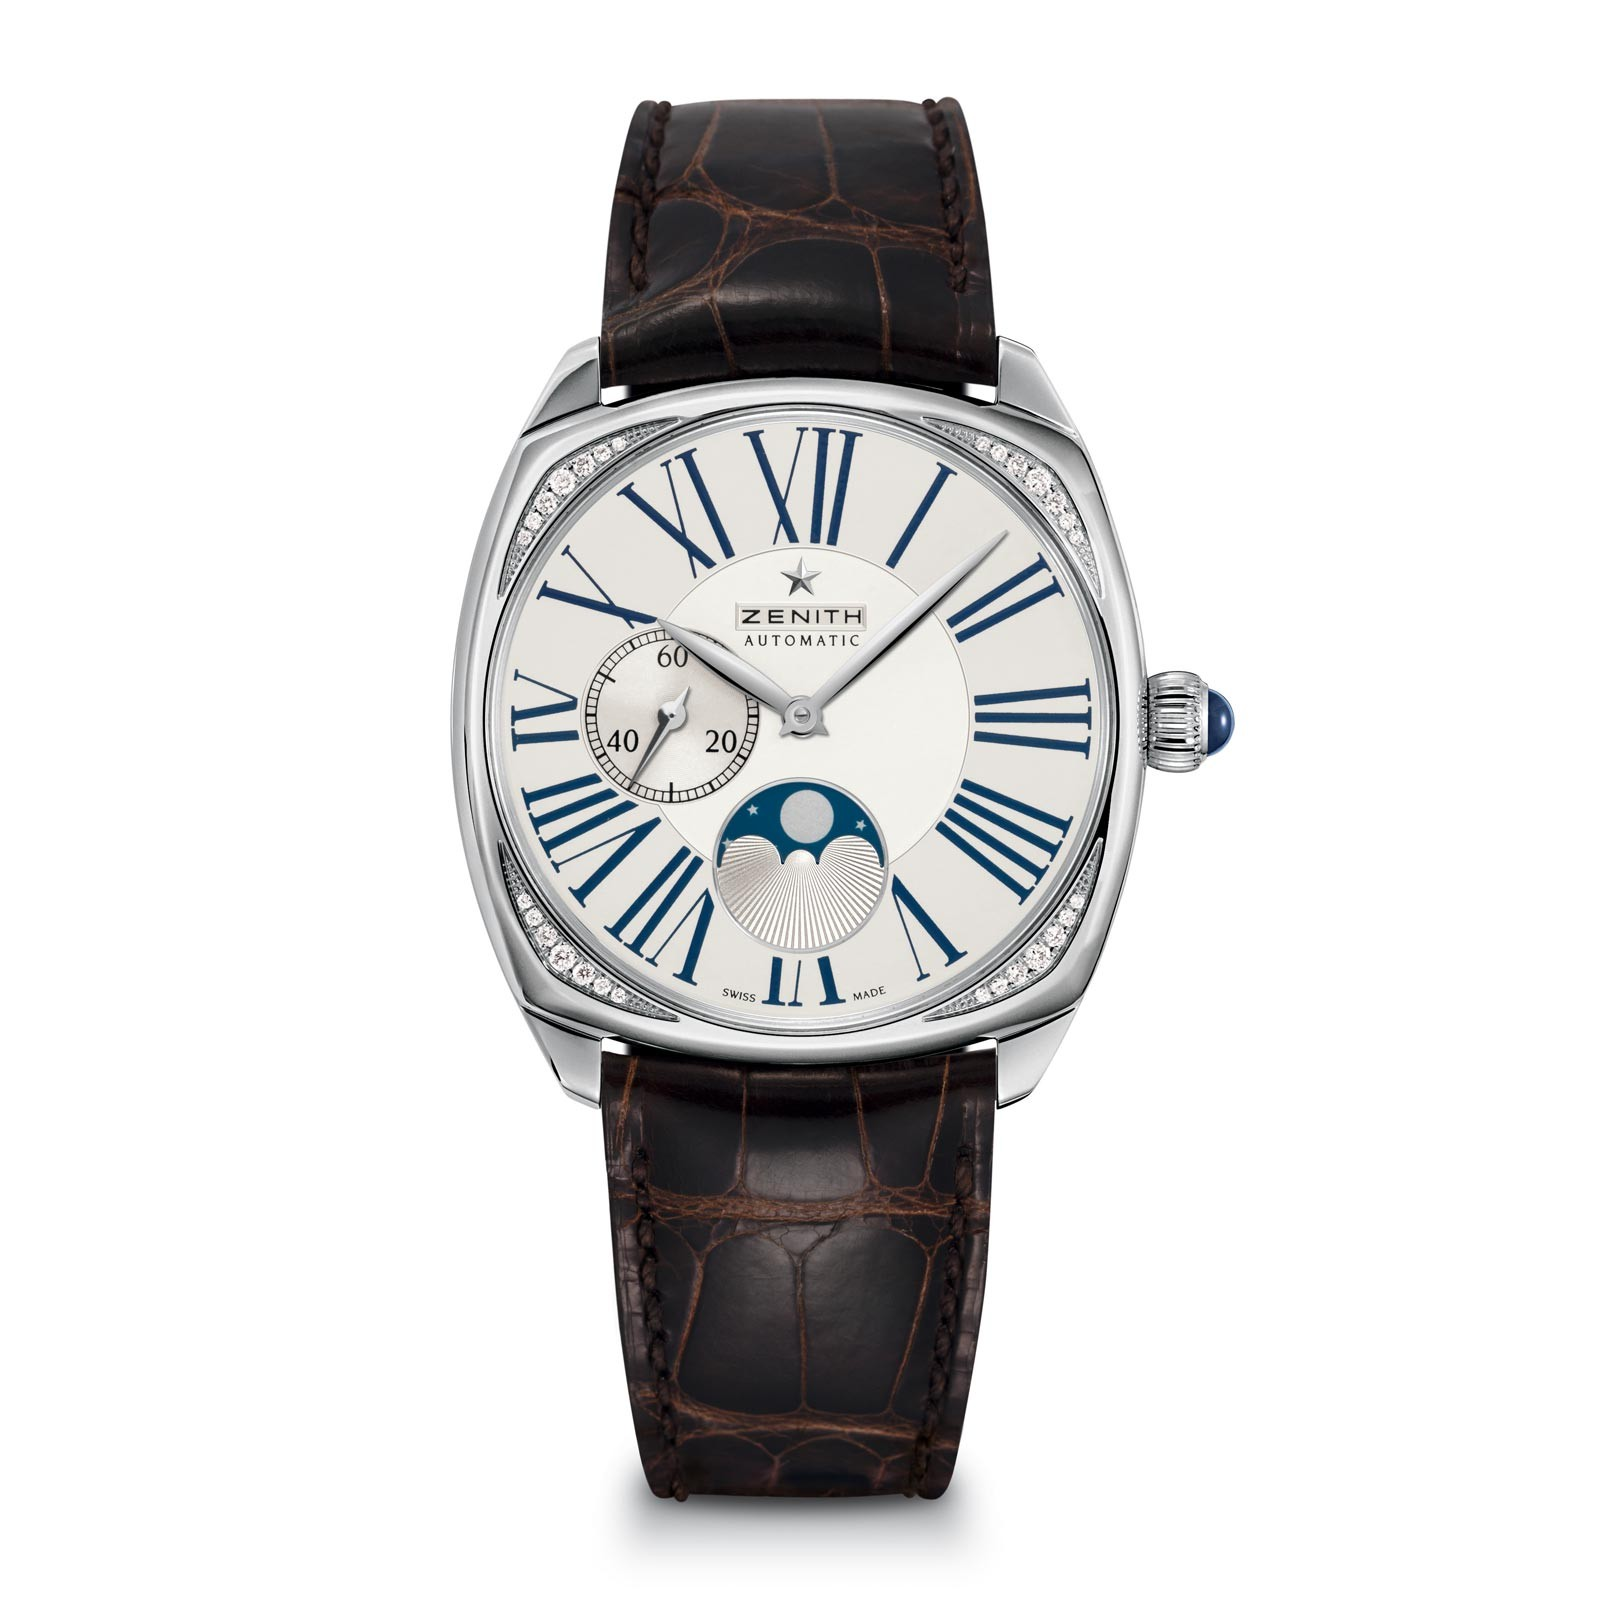 zenith-heritage-zenith-star-moonphase-16.1925.69201.c725-face-view